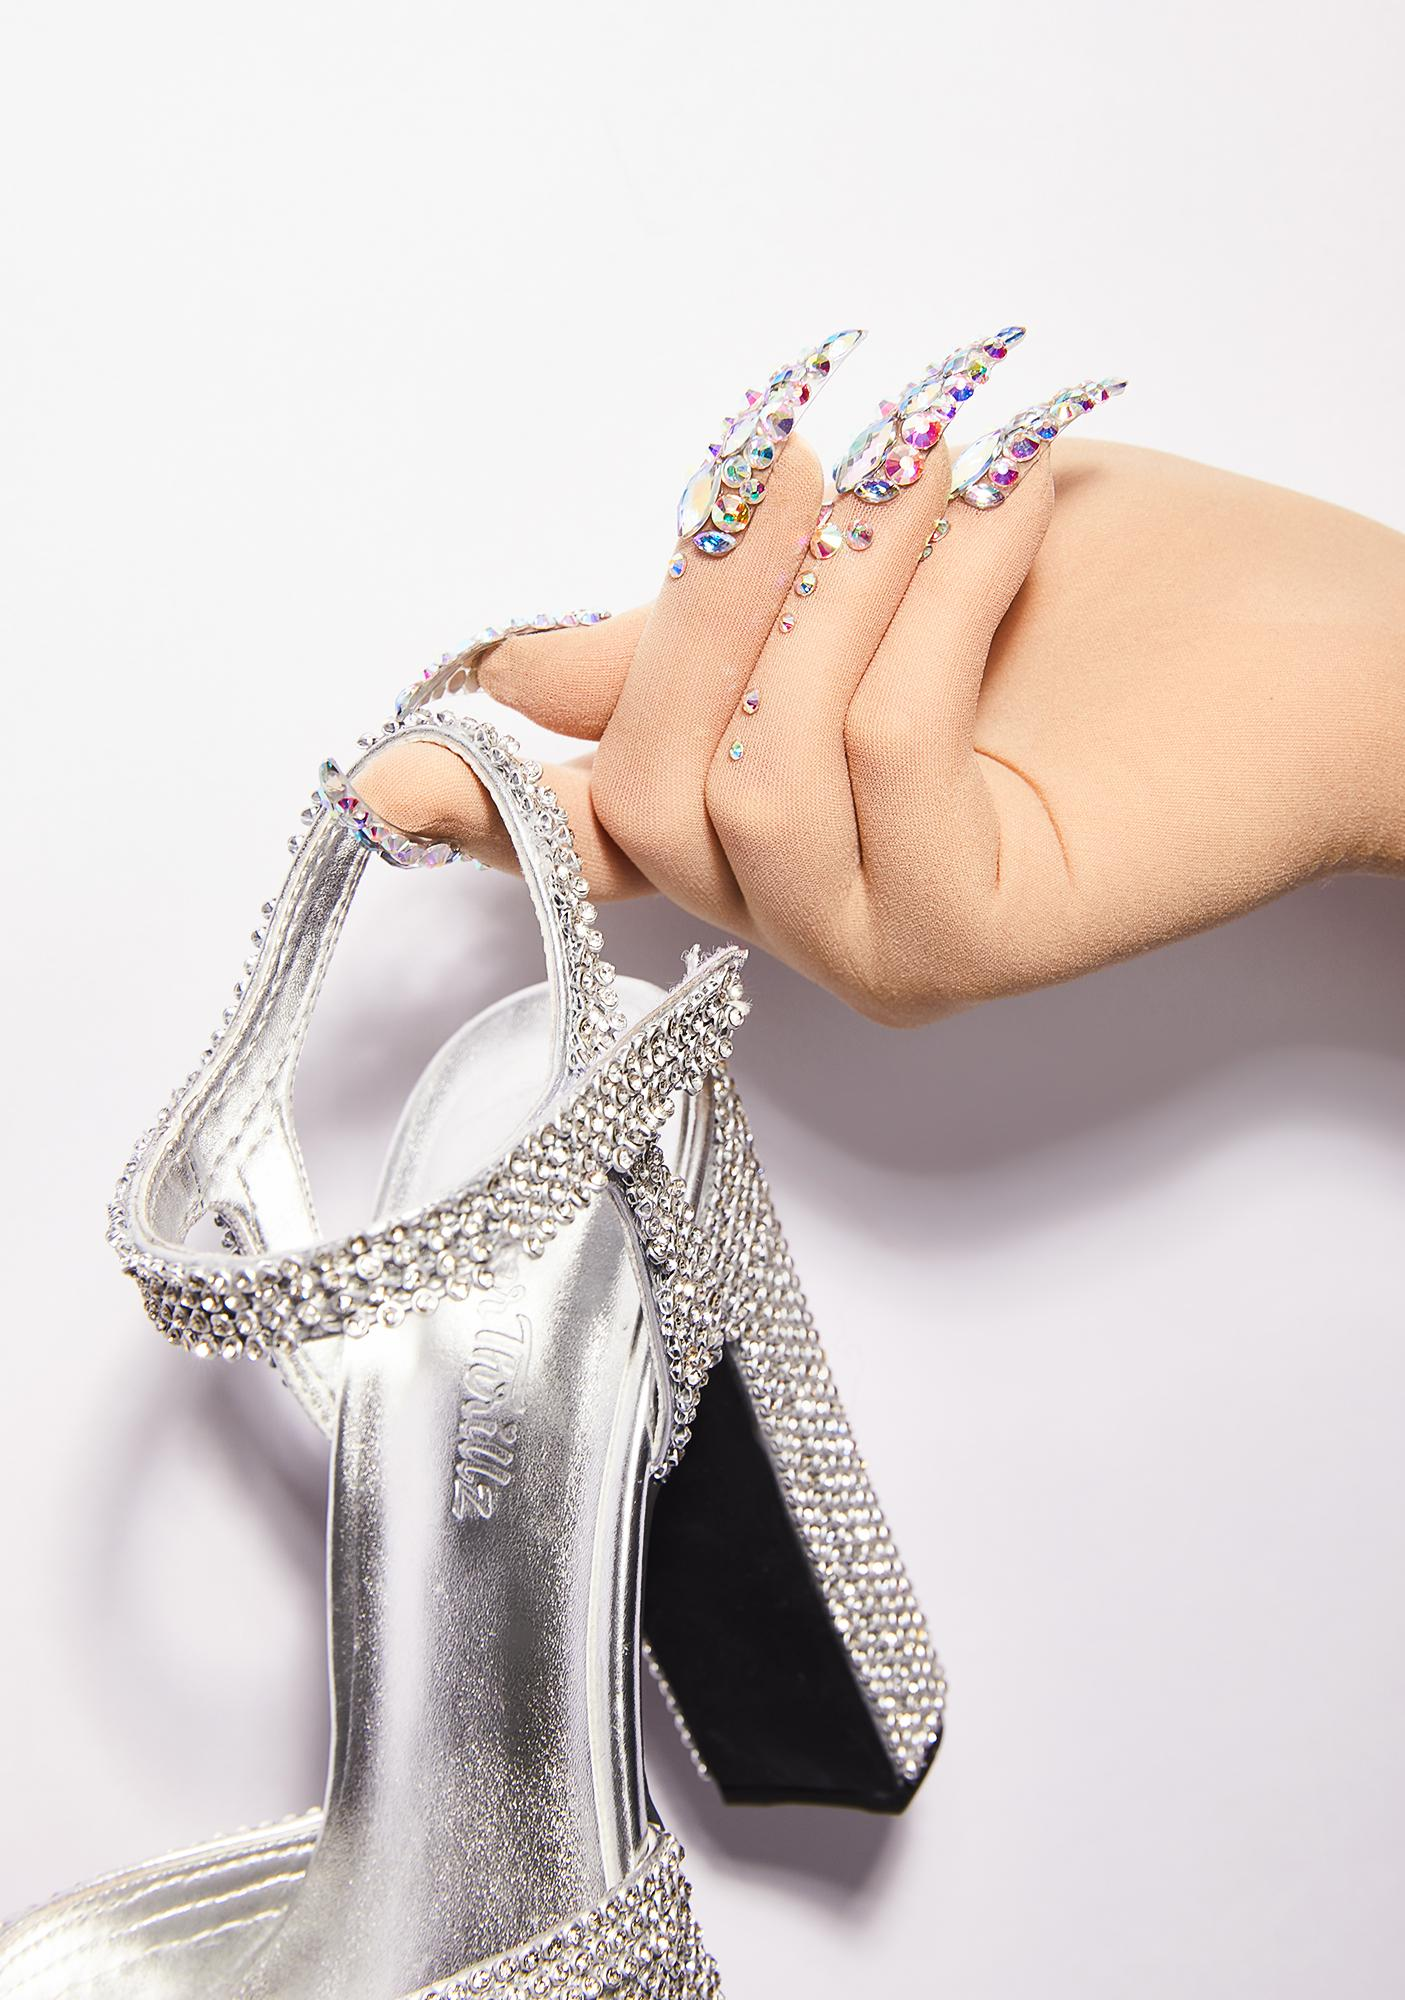 Unicorns Poop Glitter Diamante Nail Gloves